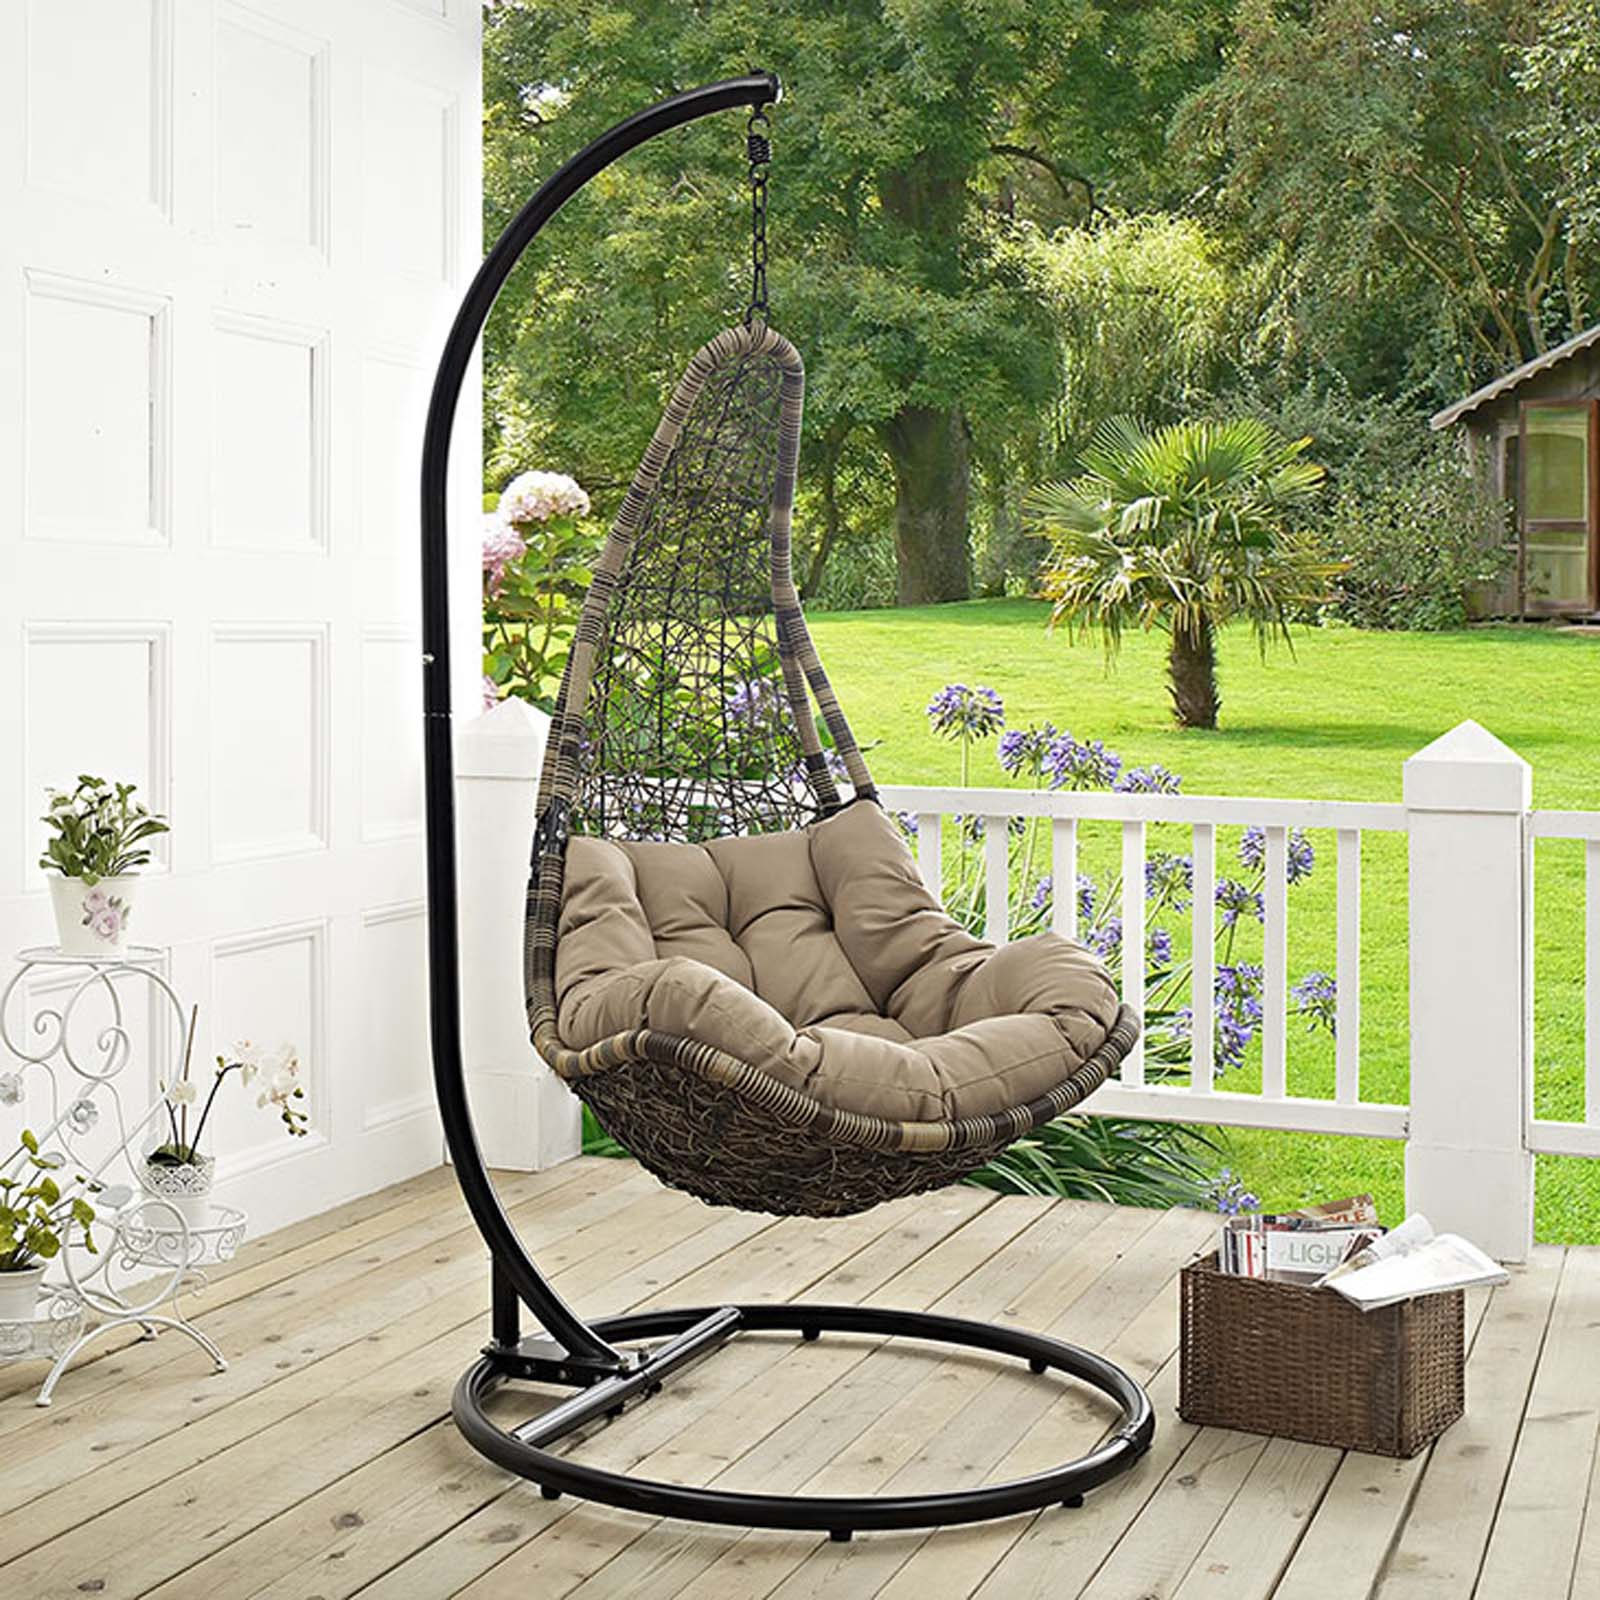 Modterior Outdoor Outdoor Chairs Abate Outdoor Patio Swing Chair